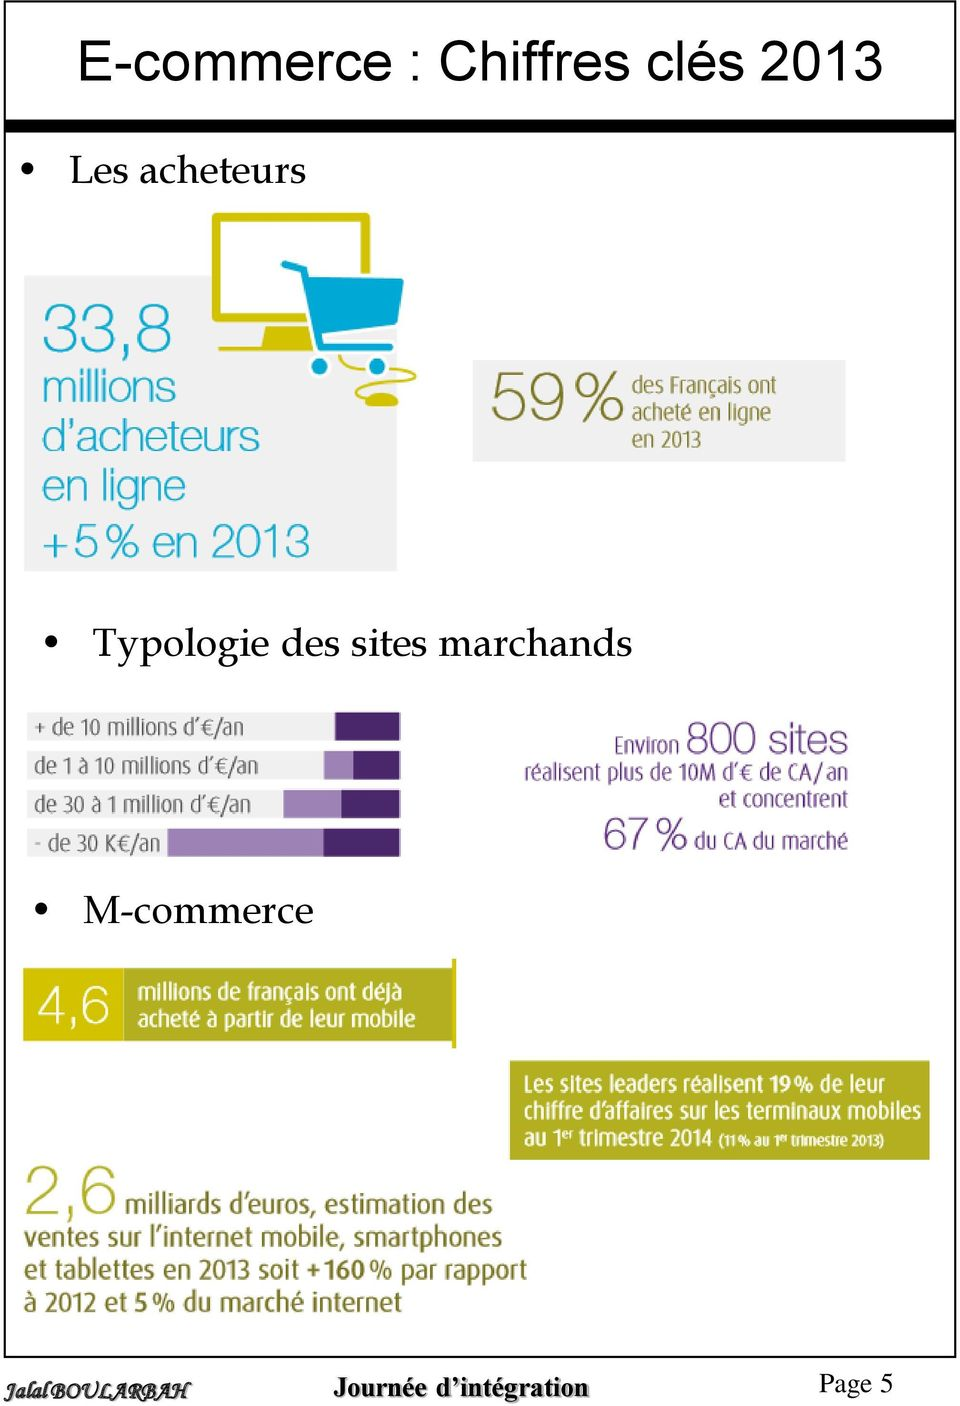 Typologie des sites